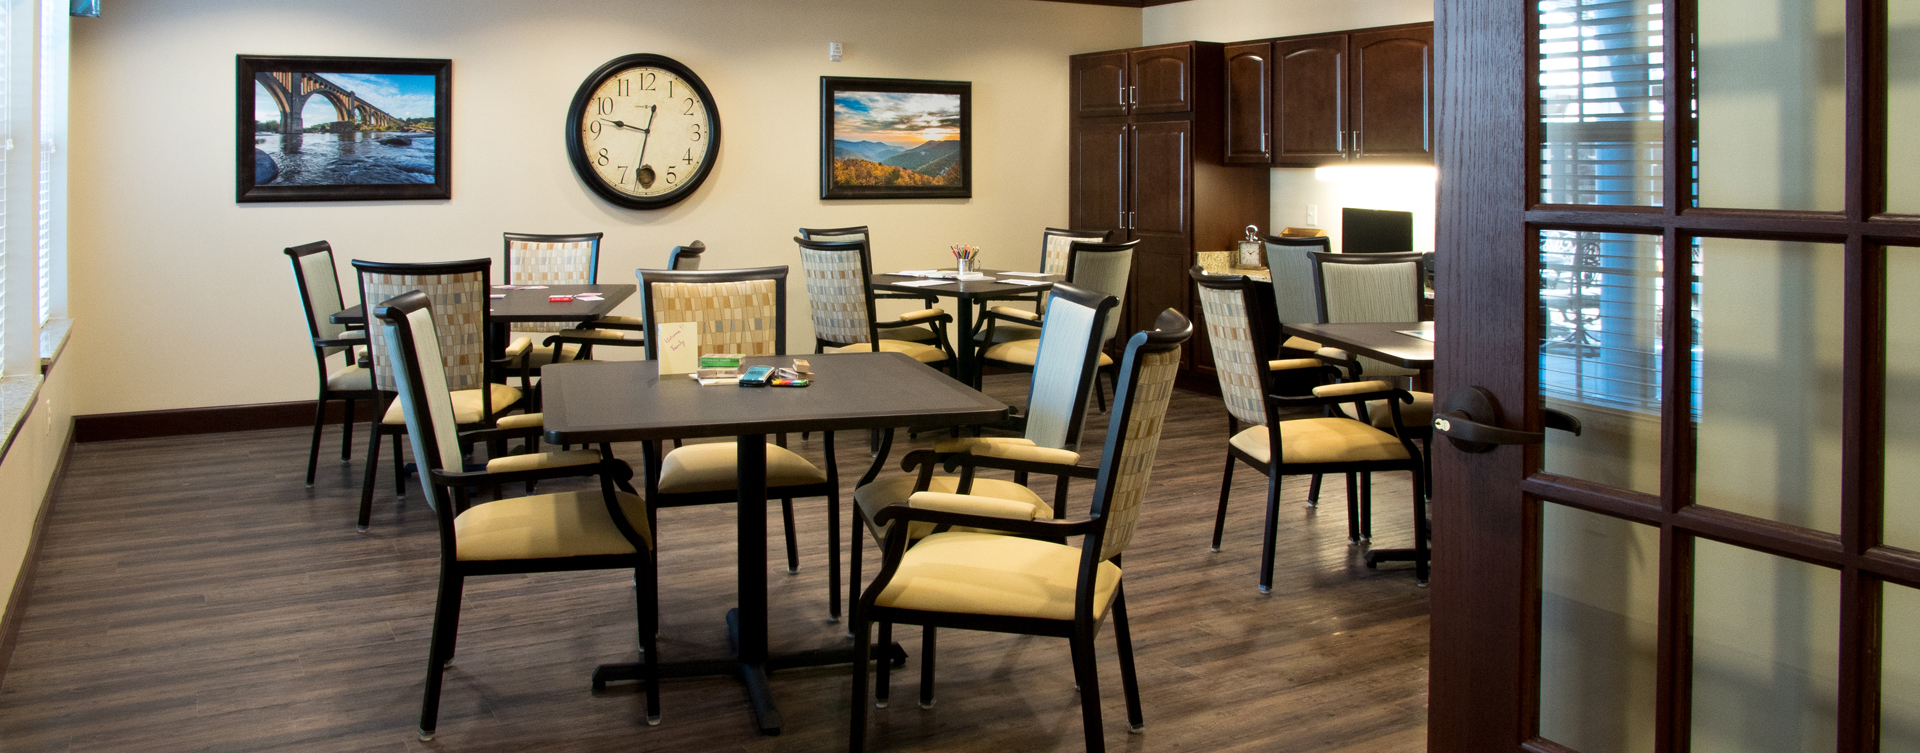 Enjoy a good card game with friends in the activity room at Bickford of Chesterfield